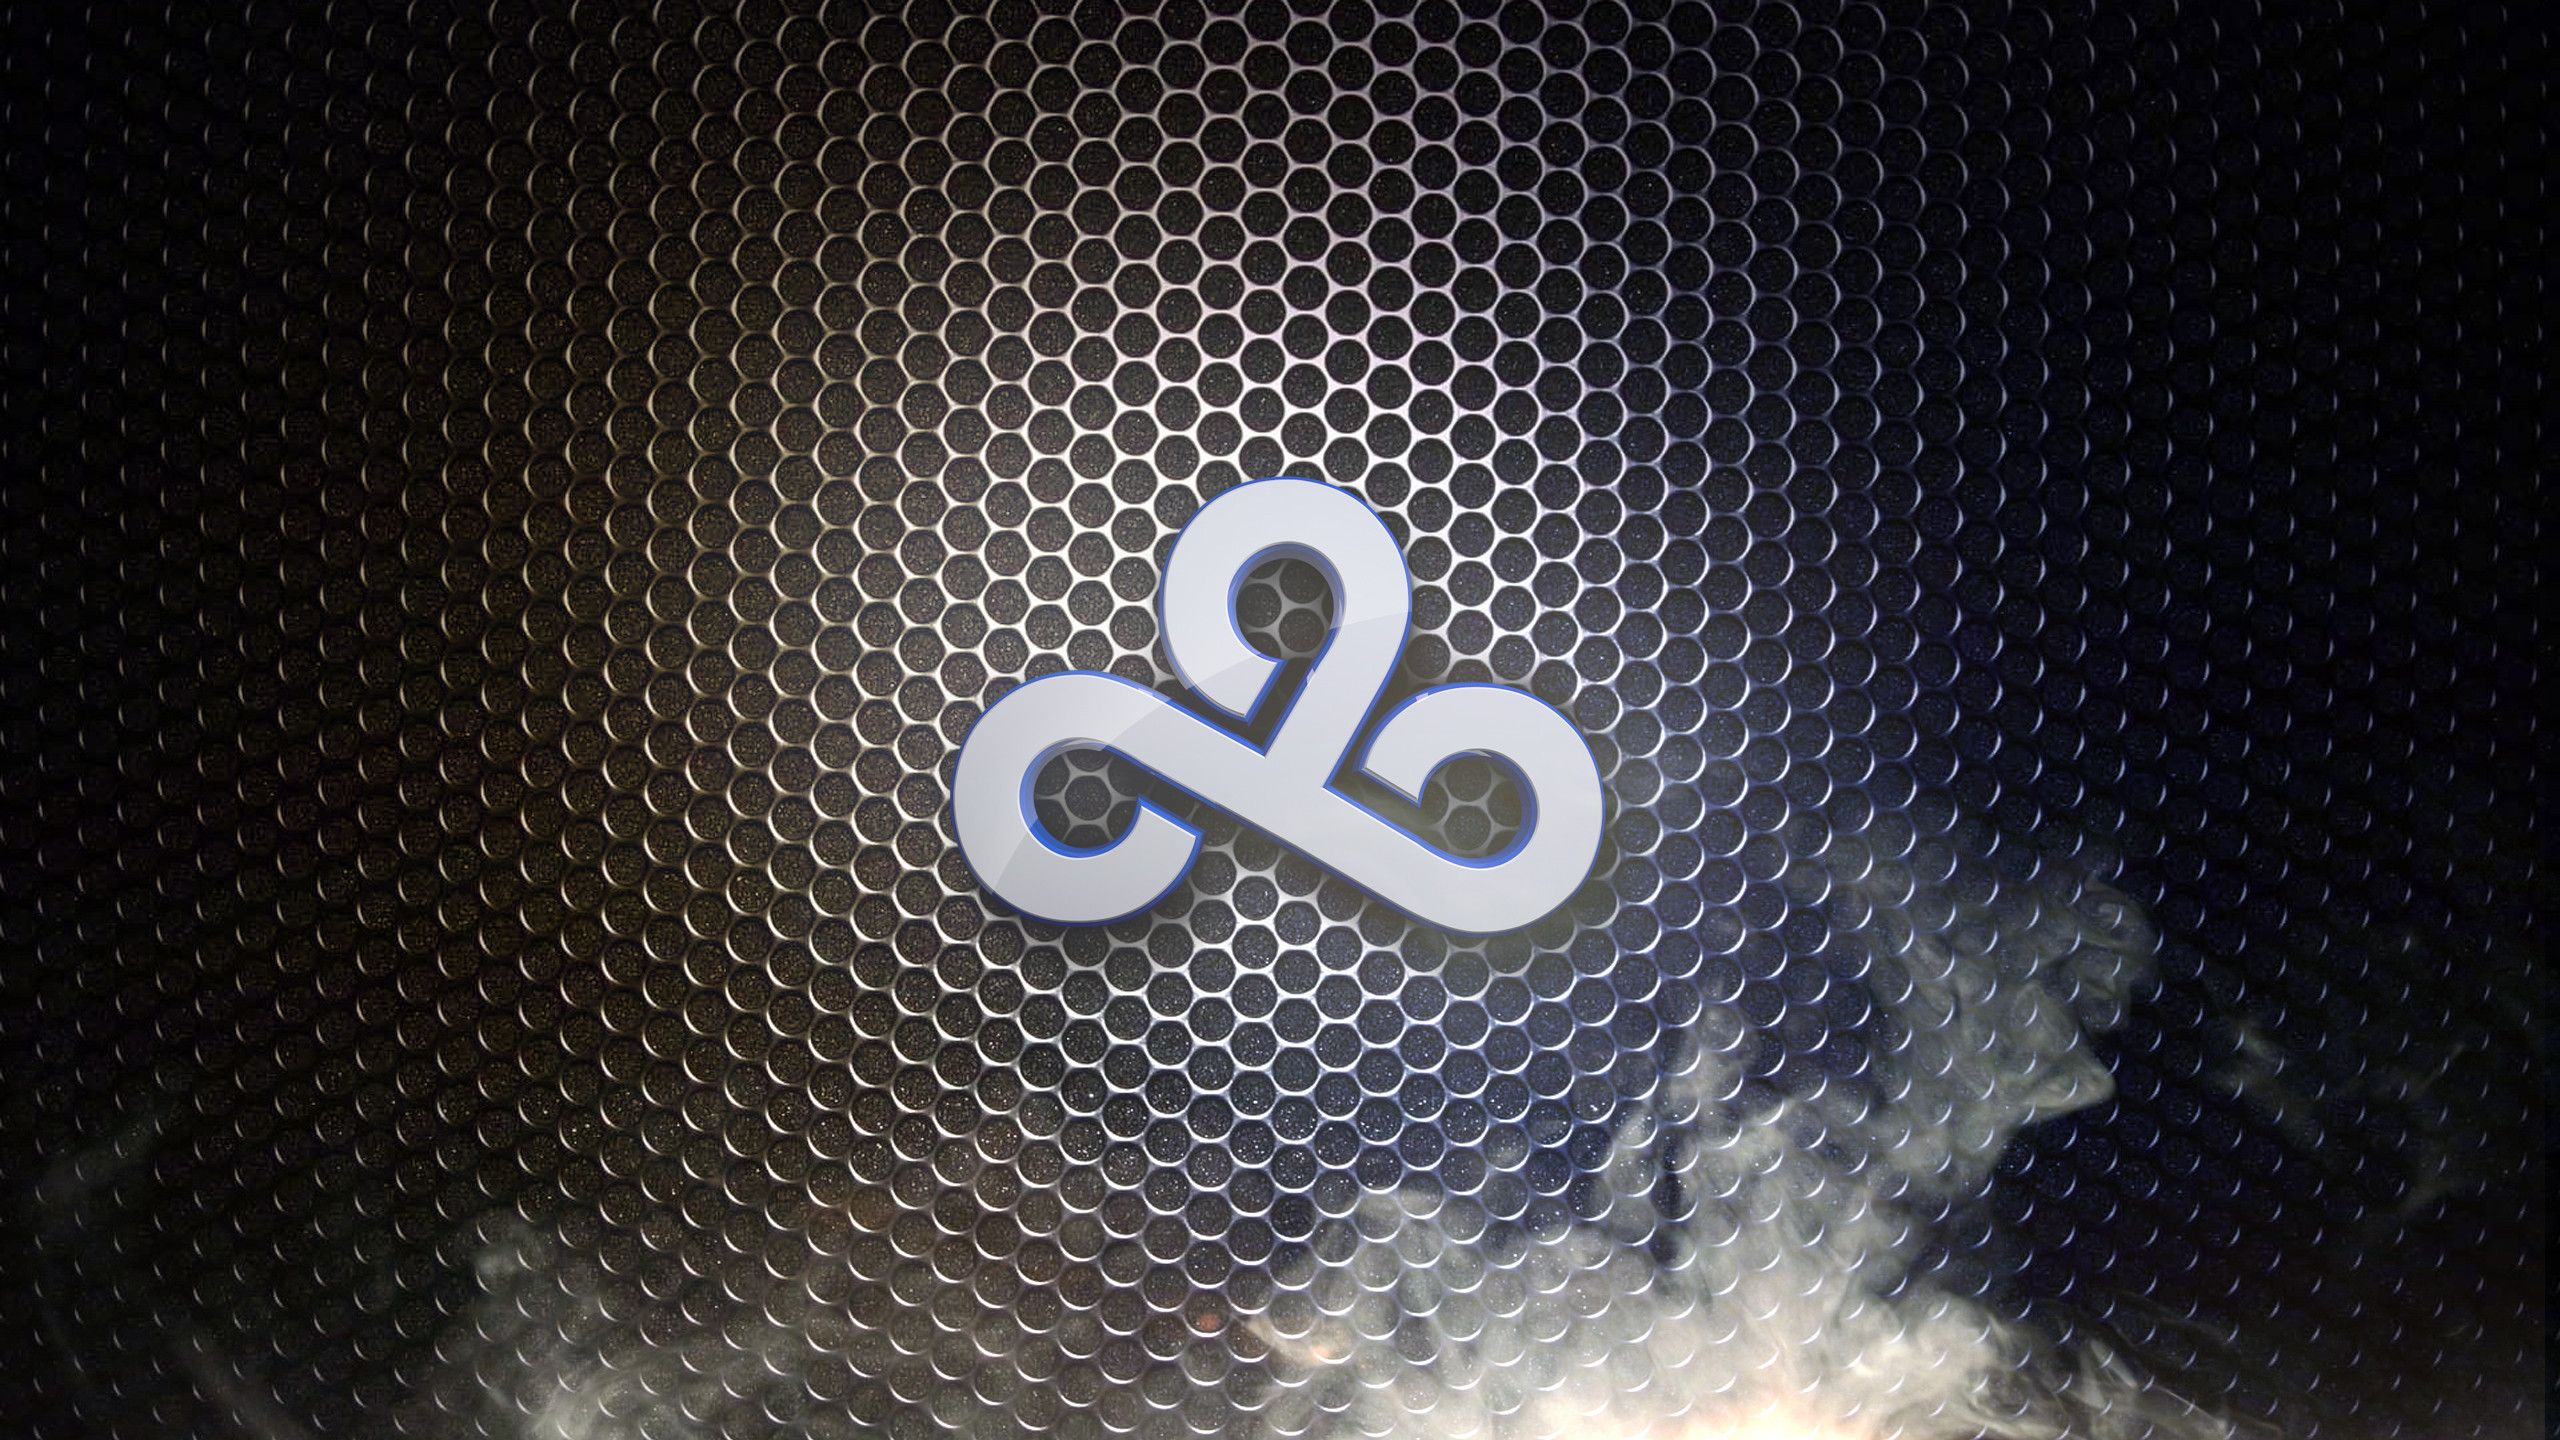 2560x1440 Cloud9 Wallpapers - Album on Imgur